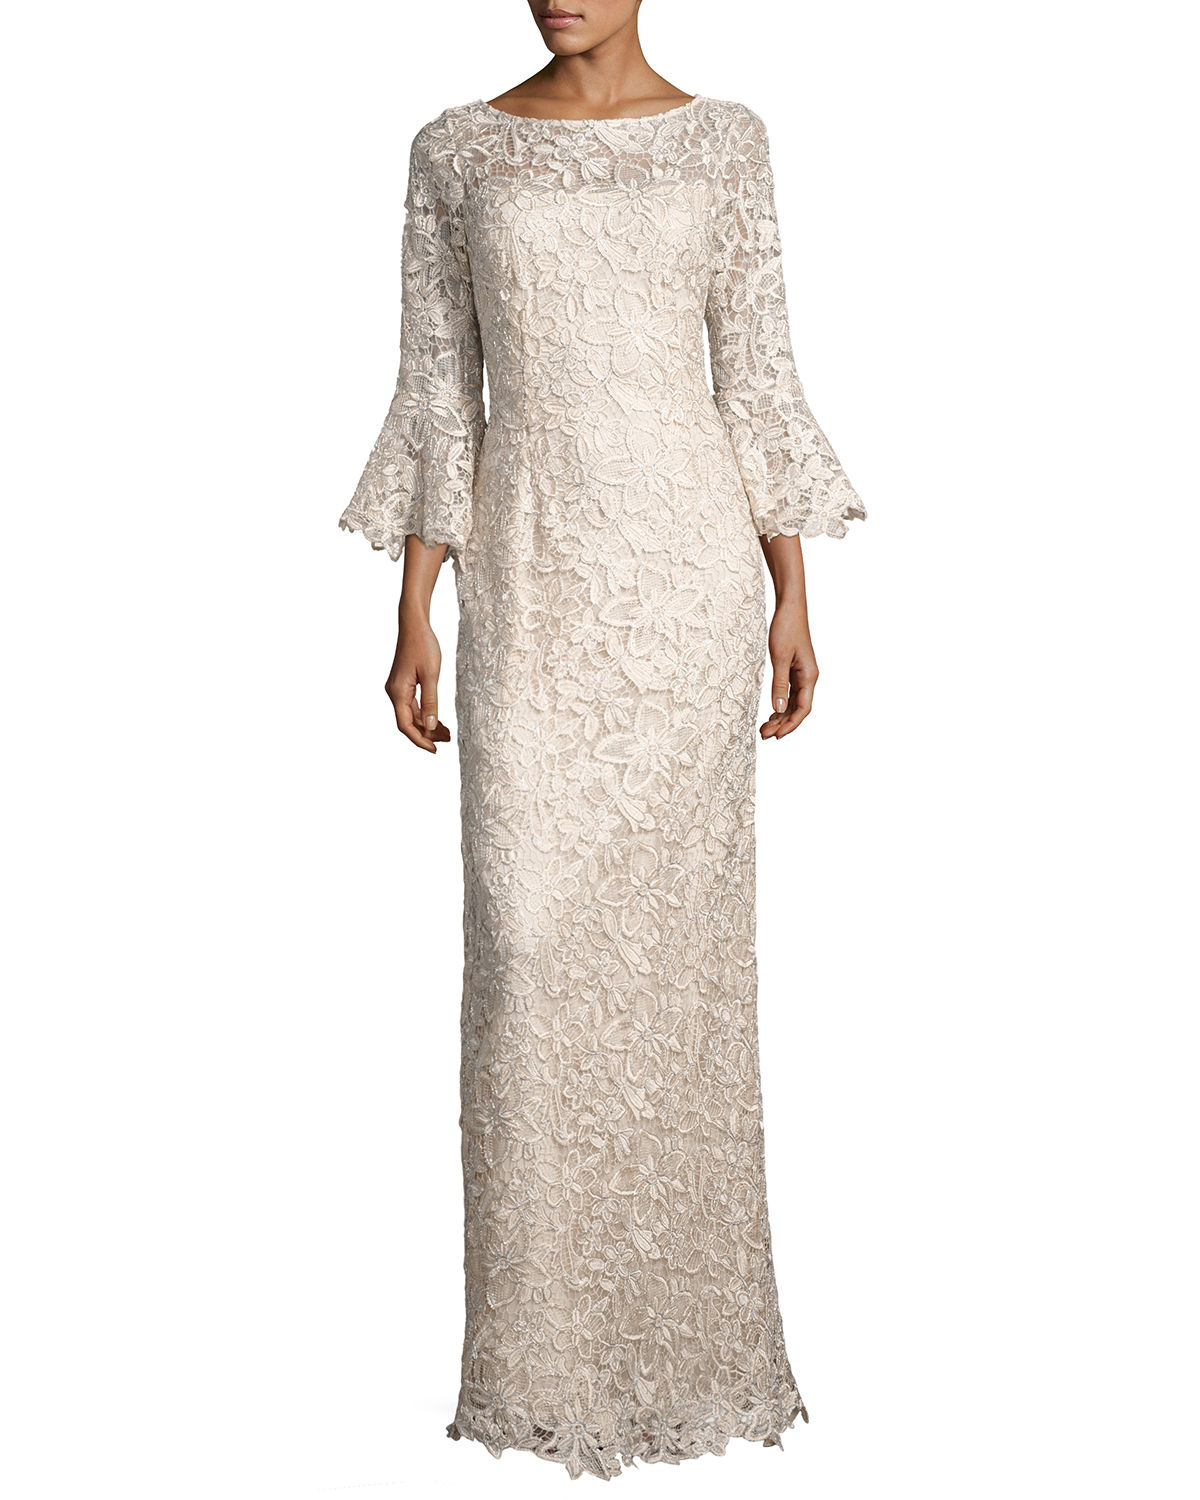 RICKIE FREEMAN FOR TERI JON BELL-SLEEVE FLORAL LACE COLUMN GOWN ...